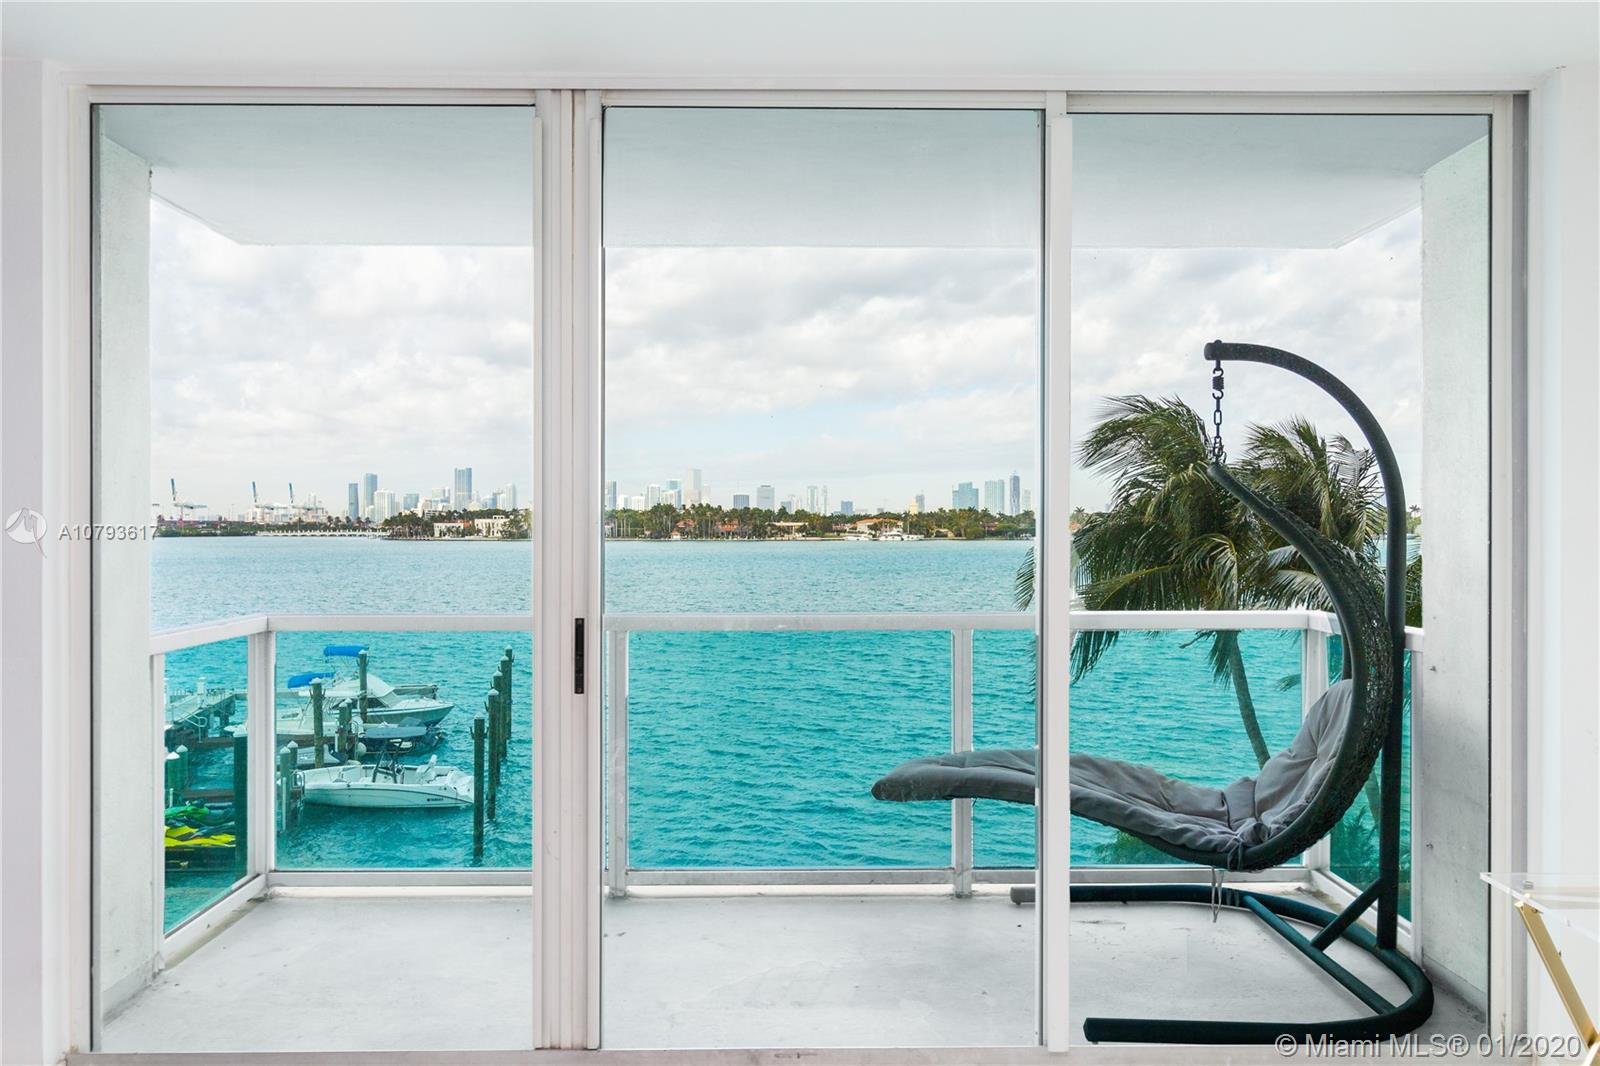 650 West Ave # 305, Miami Beach, Florida 33139, 1 Bedroom Bedrooms, ,1 BathroomBathrooms,Residential,For Sale,650 West Ave # 305,A10793617